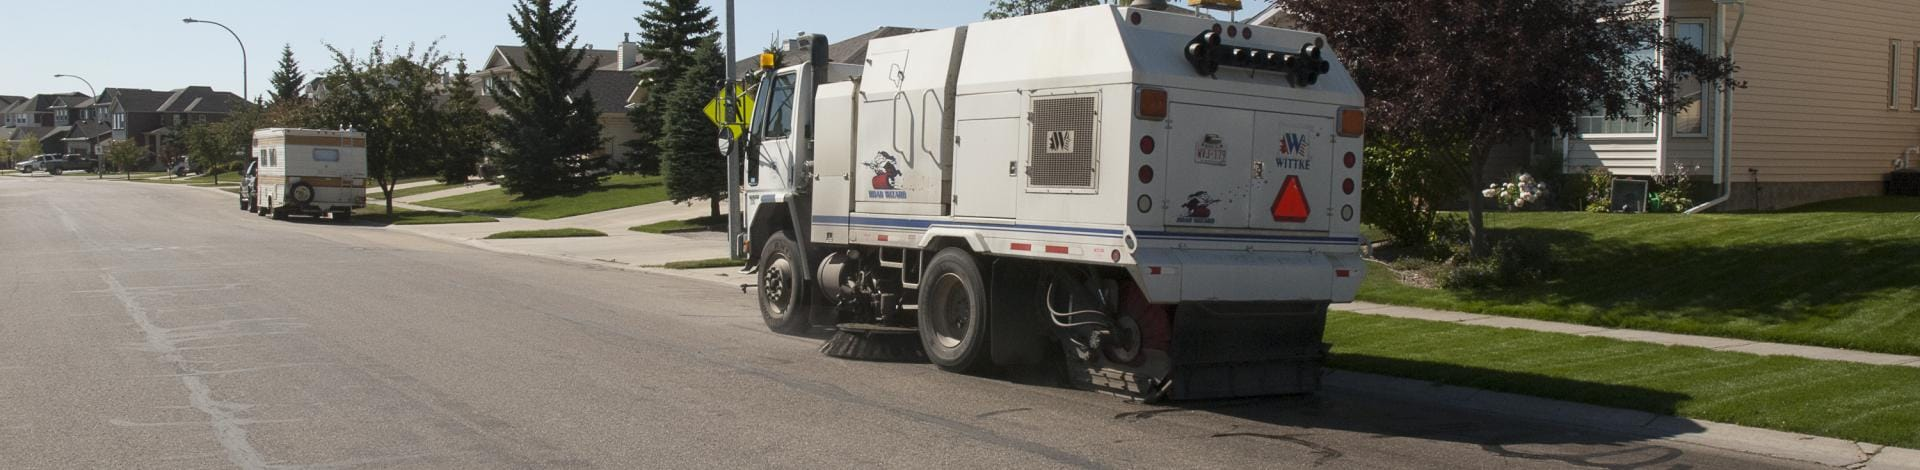 Street cleaning equipment in use in a residential area in Okotoks.